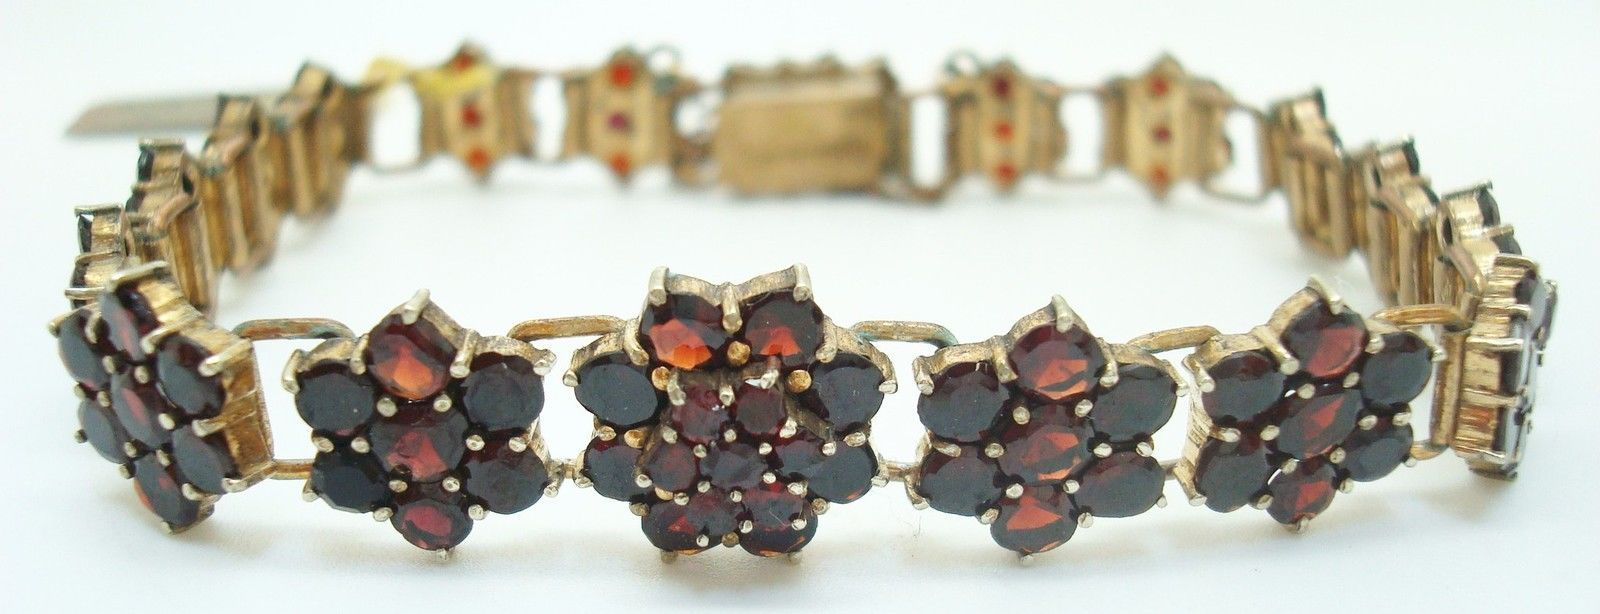 Genuine Natural Bohemian Garnet Bracelet with Safety Chain (#2500)